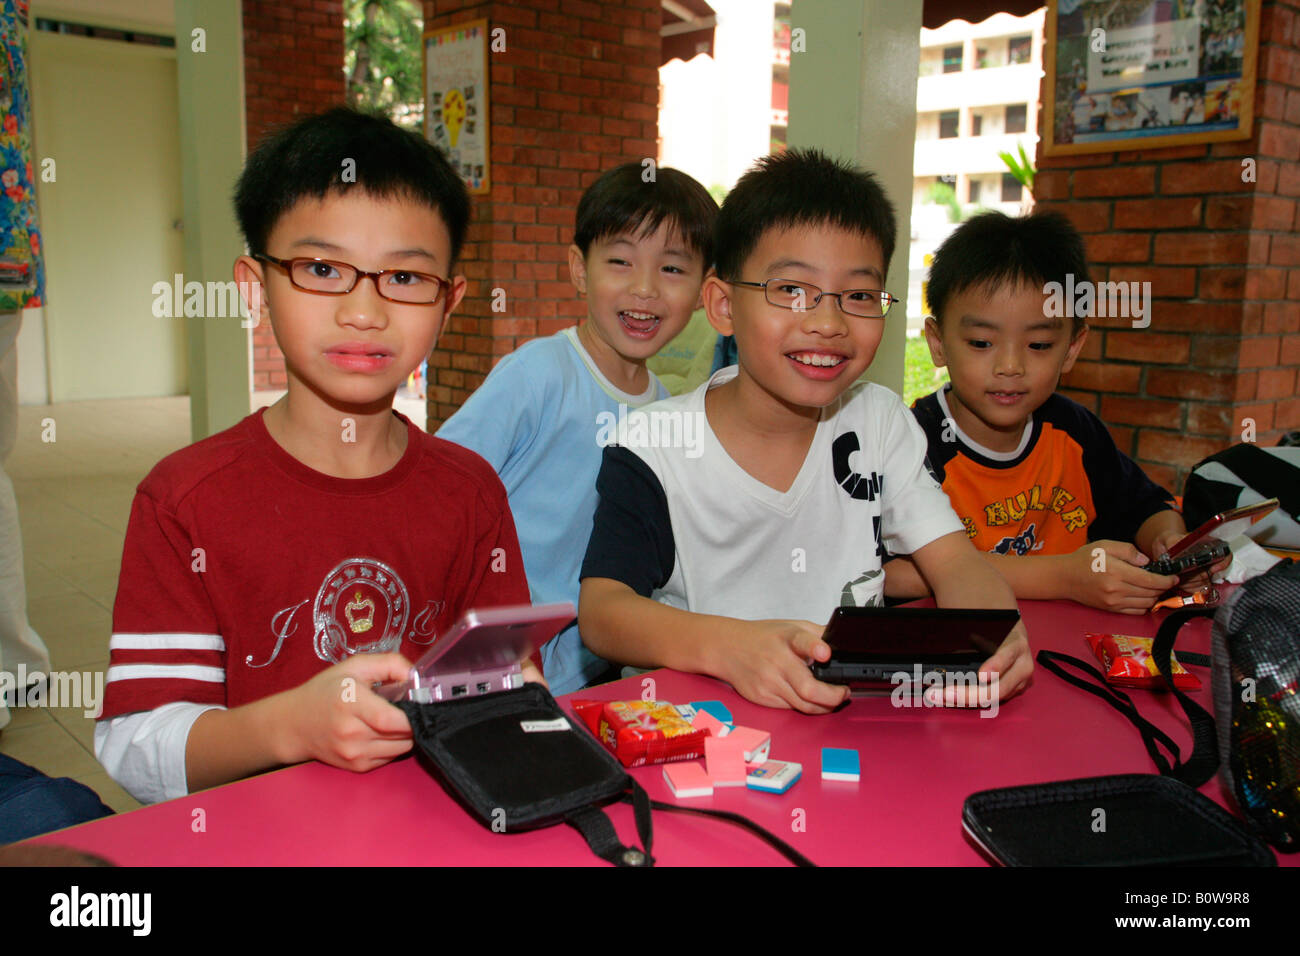 Boys playing Gameboy, Singapore, Southeast Asia - Stock Image